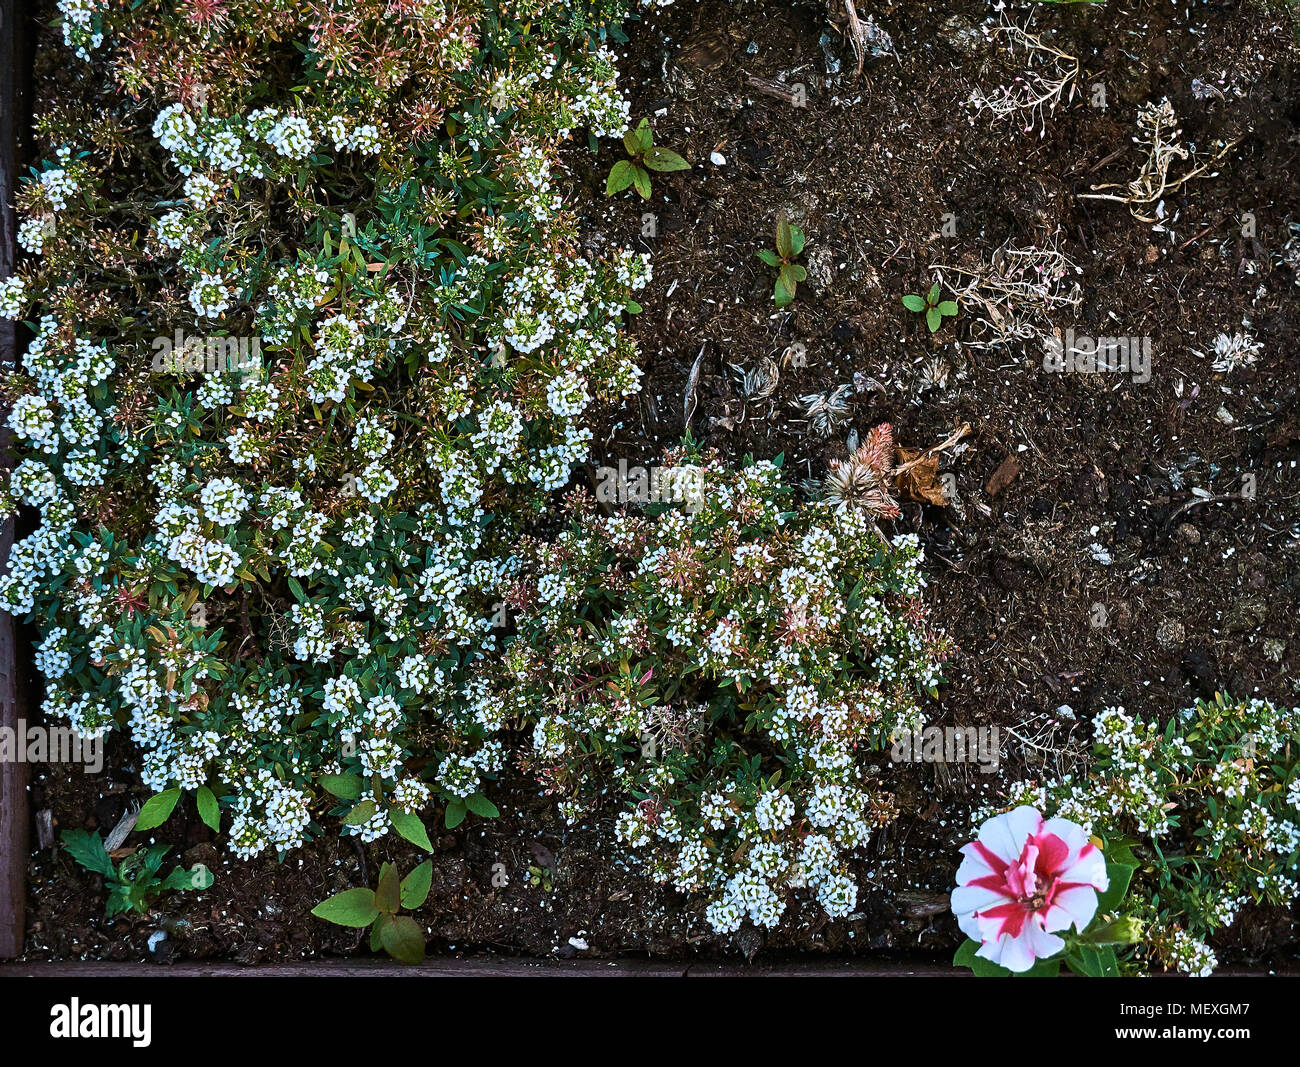 A Lot Of Small White Flowers In The Flowerbed With Big Pink Flower